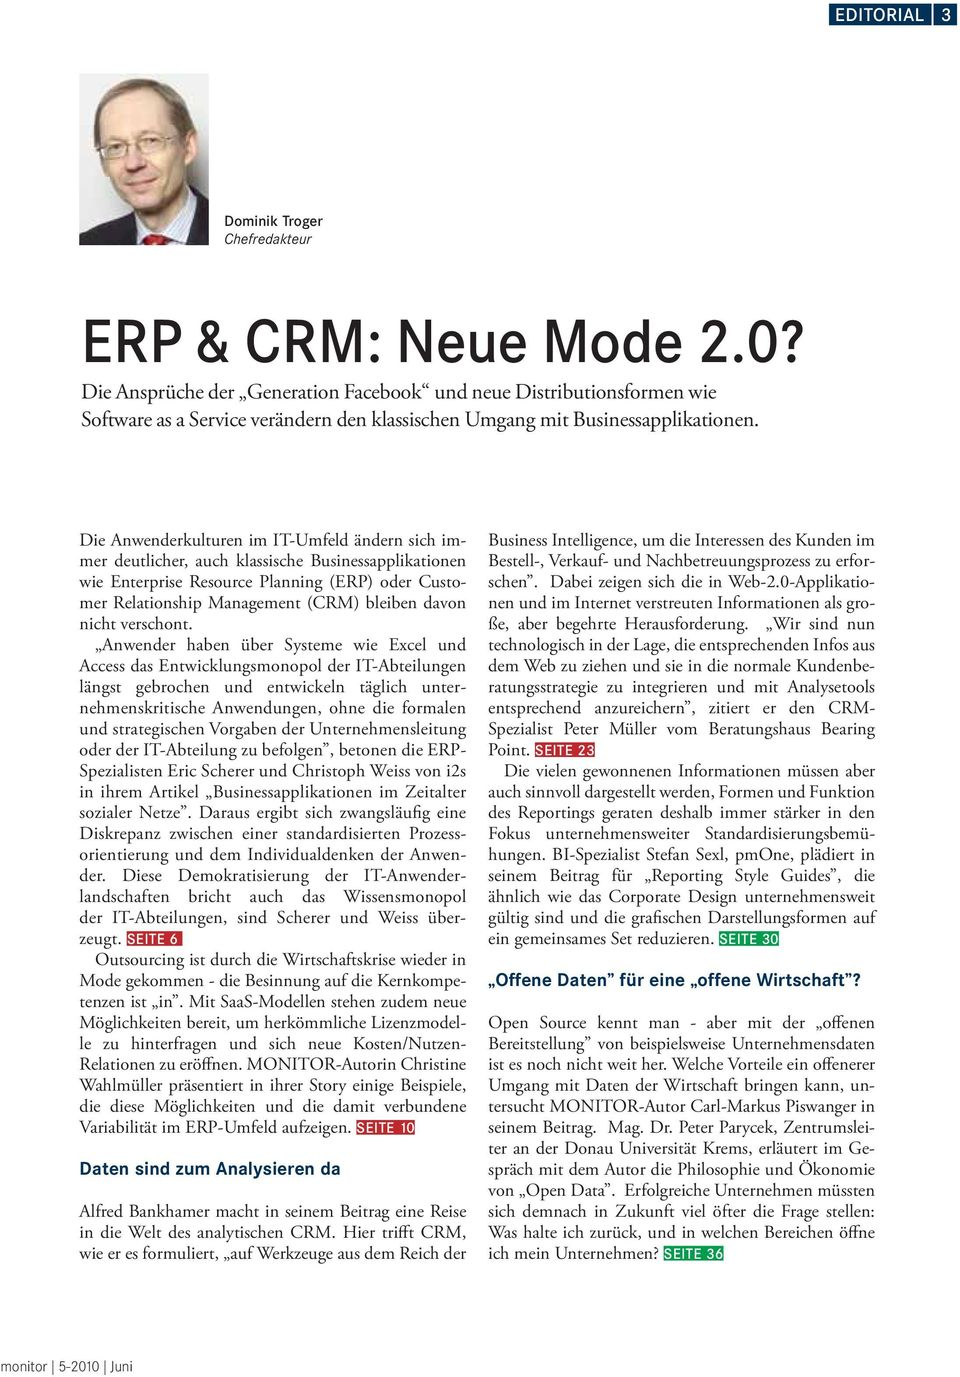 Die Anwenderkulturen im IT-Umfeld ändern sich immer deutlicher, auch klassische Businessapplikationen wie Enterprise Resource Planning (ERP) oder Customer Relationship Management (CRM) bleiben davon